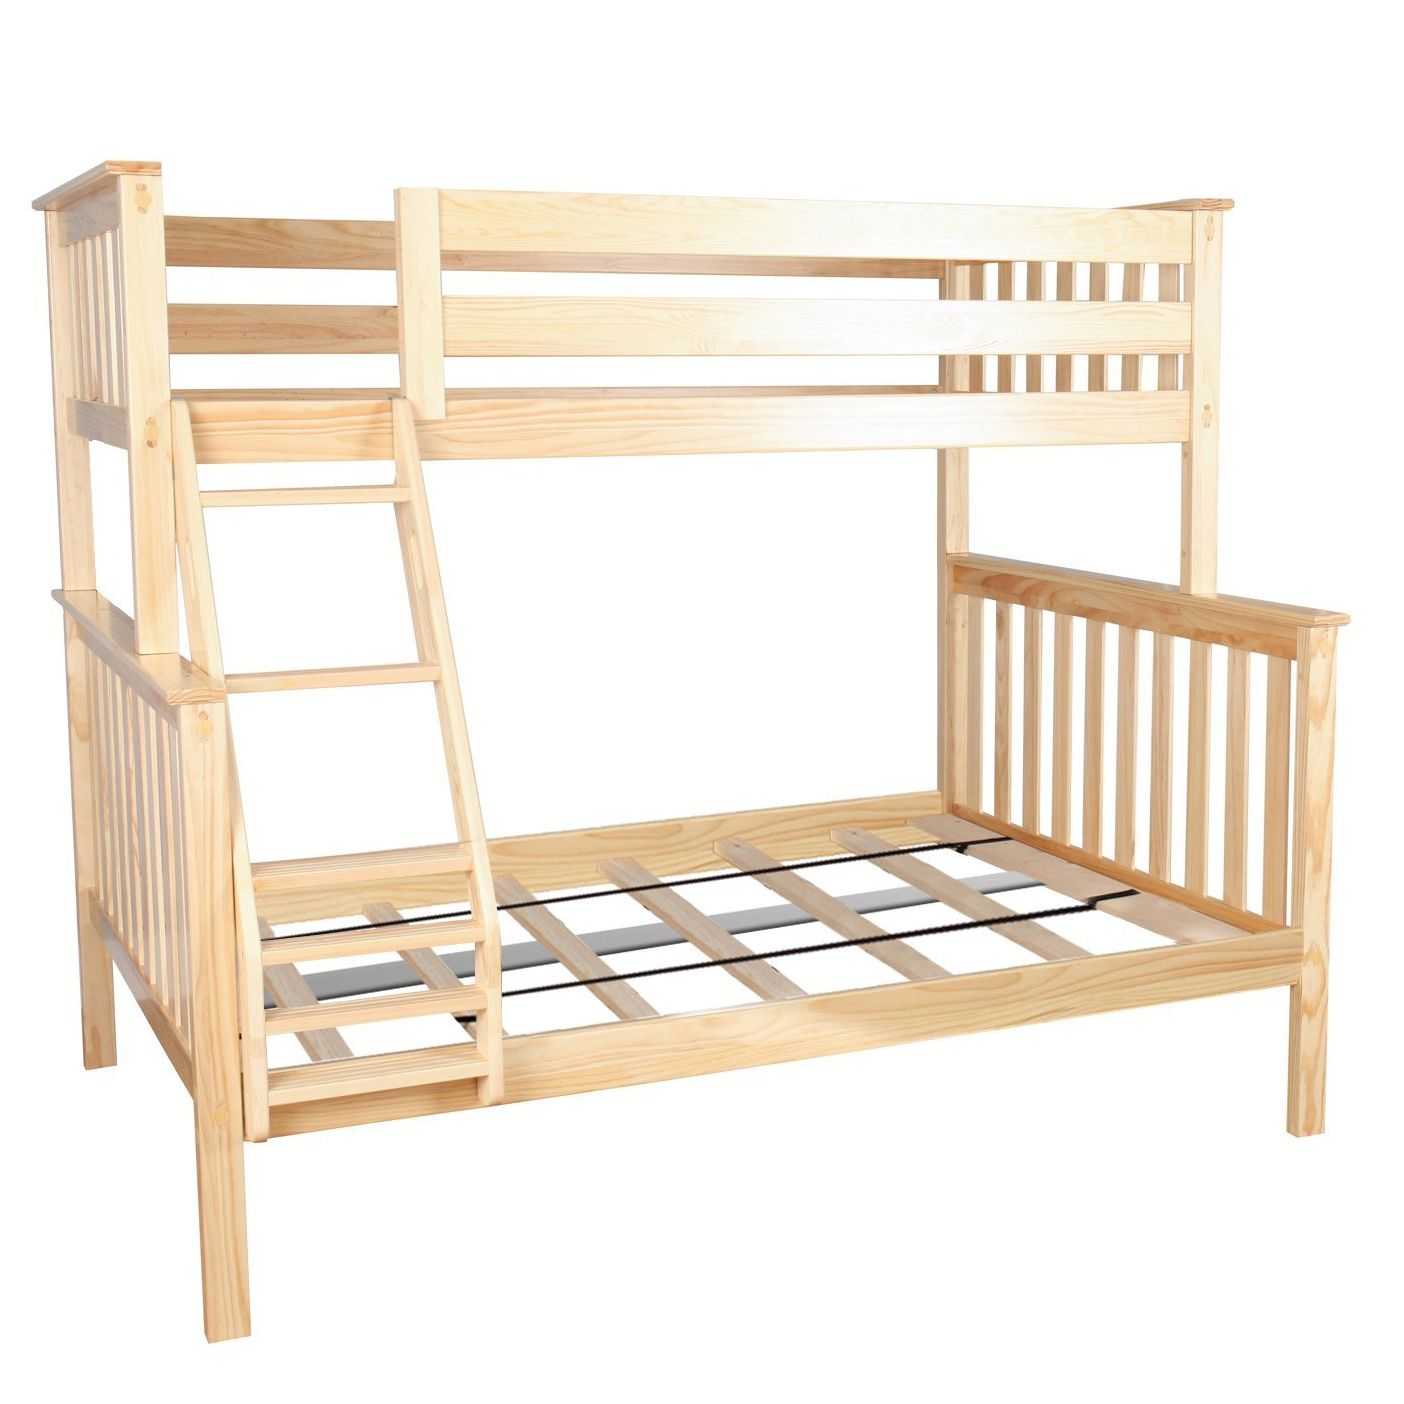 10 Best Bunk Beds for Kids in 2018 Modern Kids Bunk Beds for All Ages